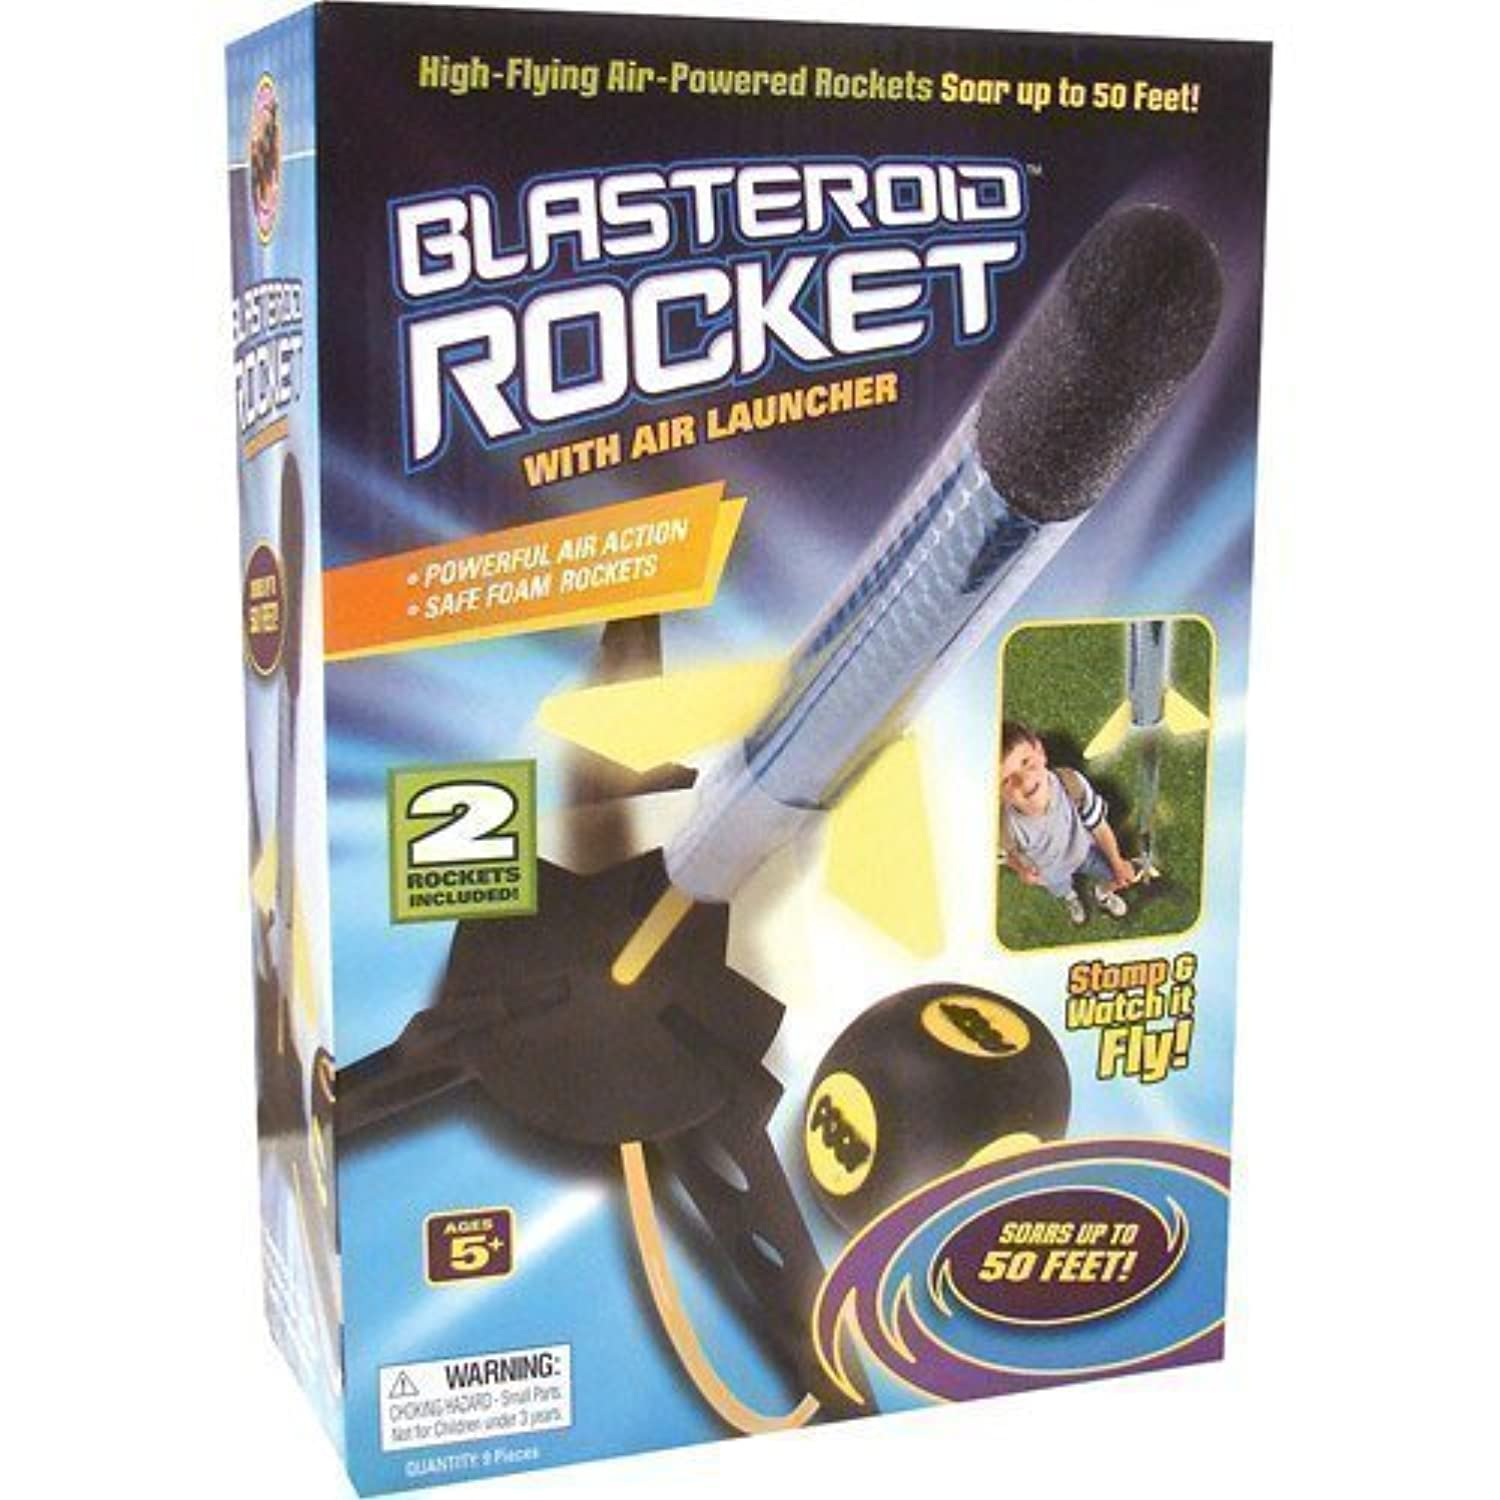 POOF Blasteroid Rocket with Launcher by Unknown